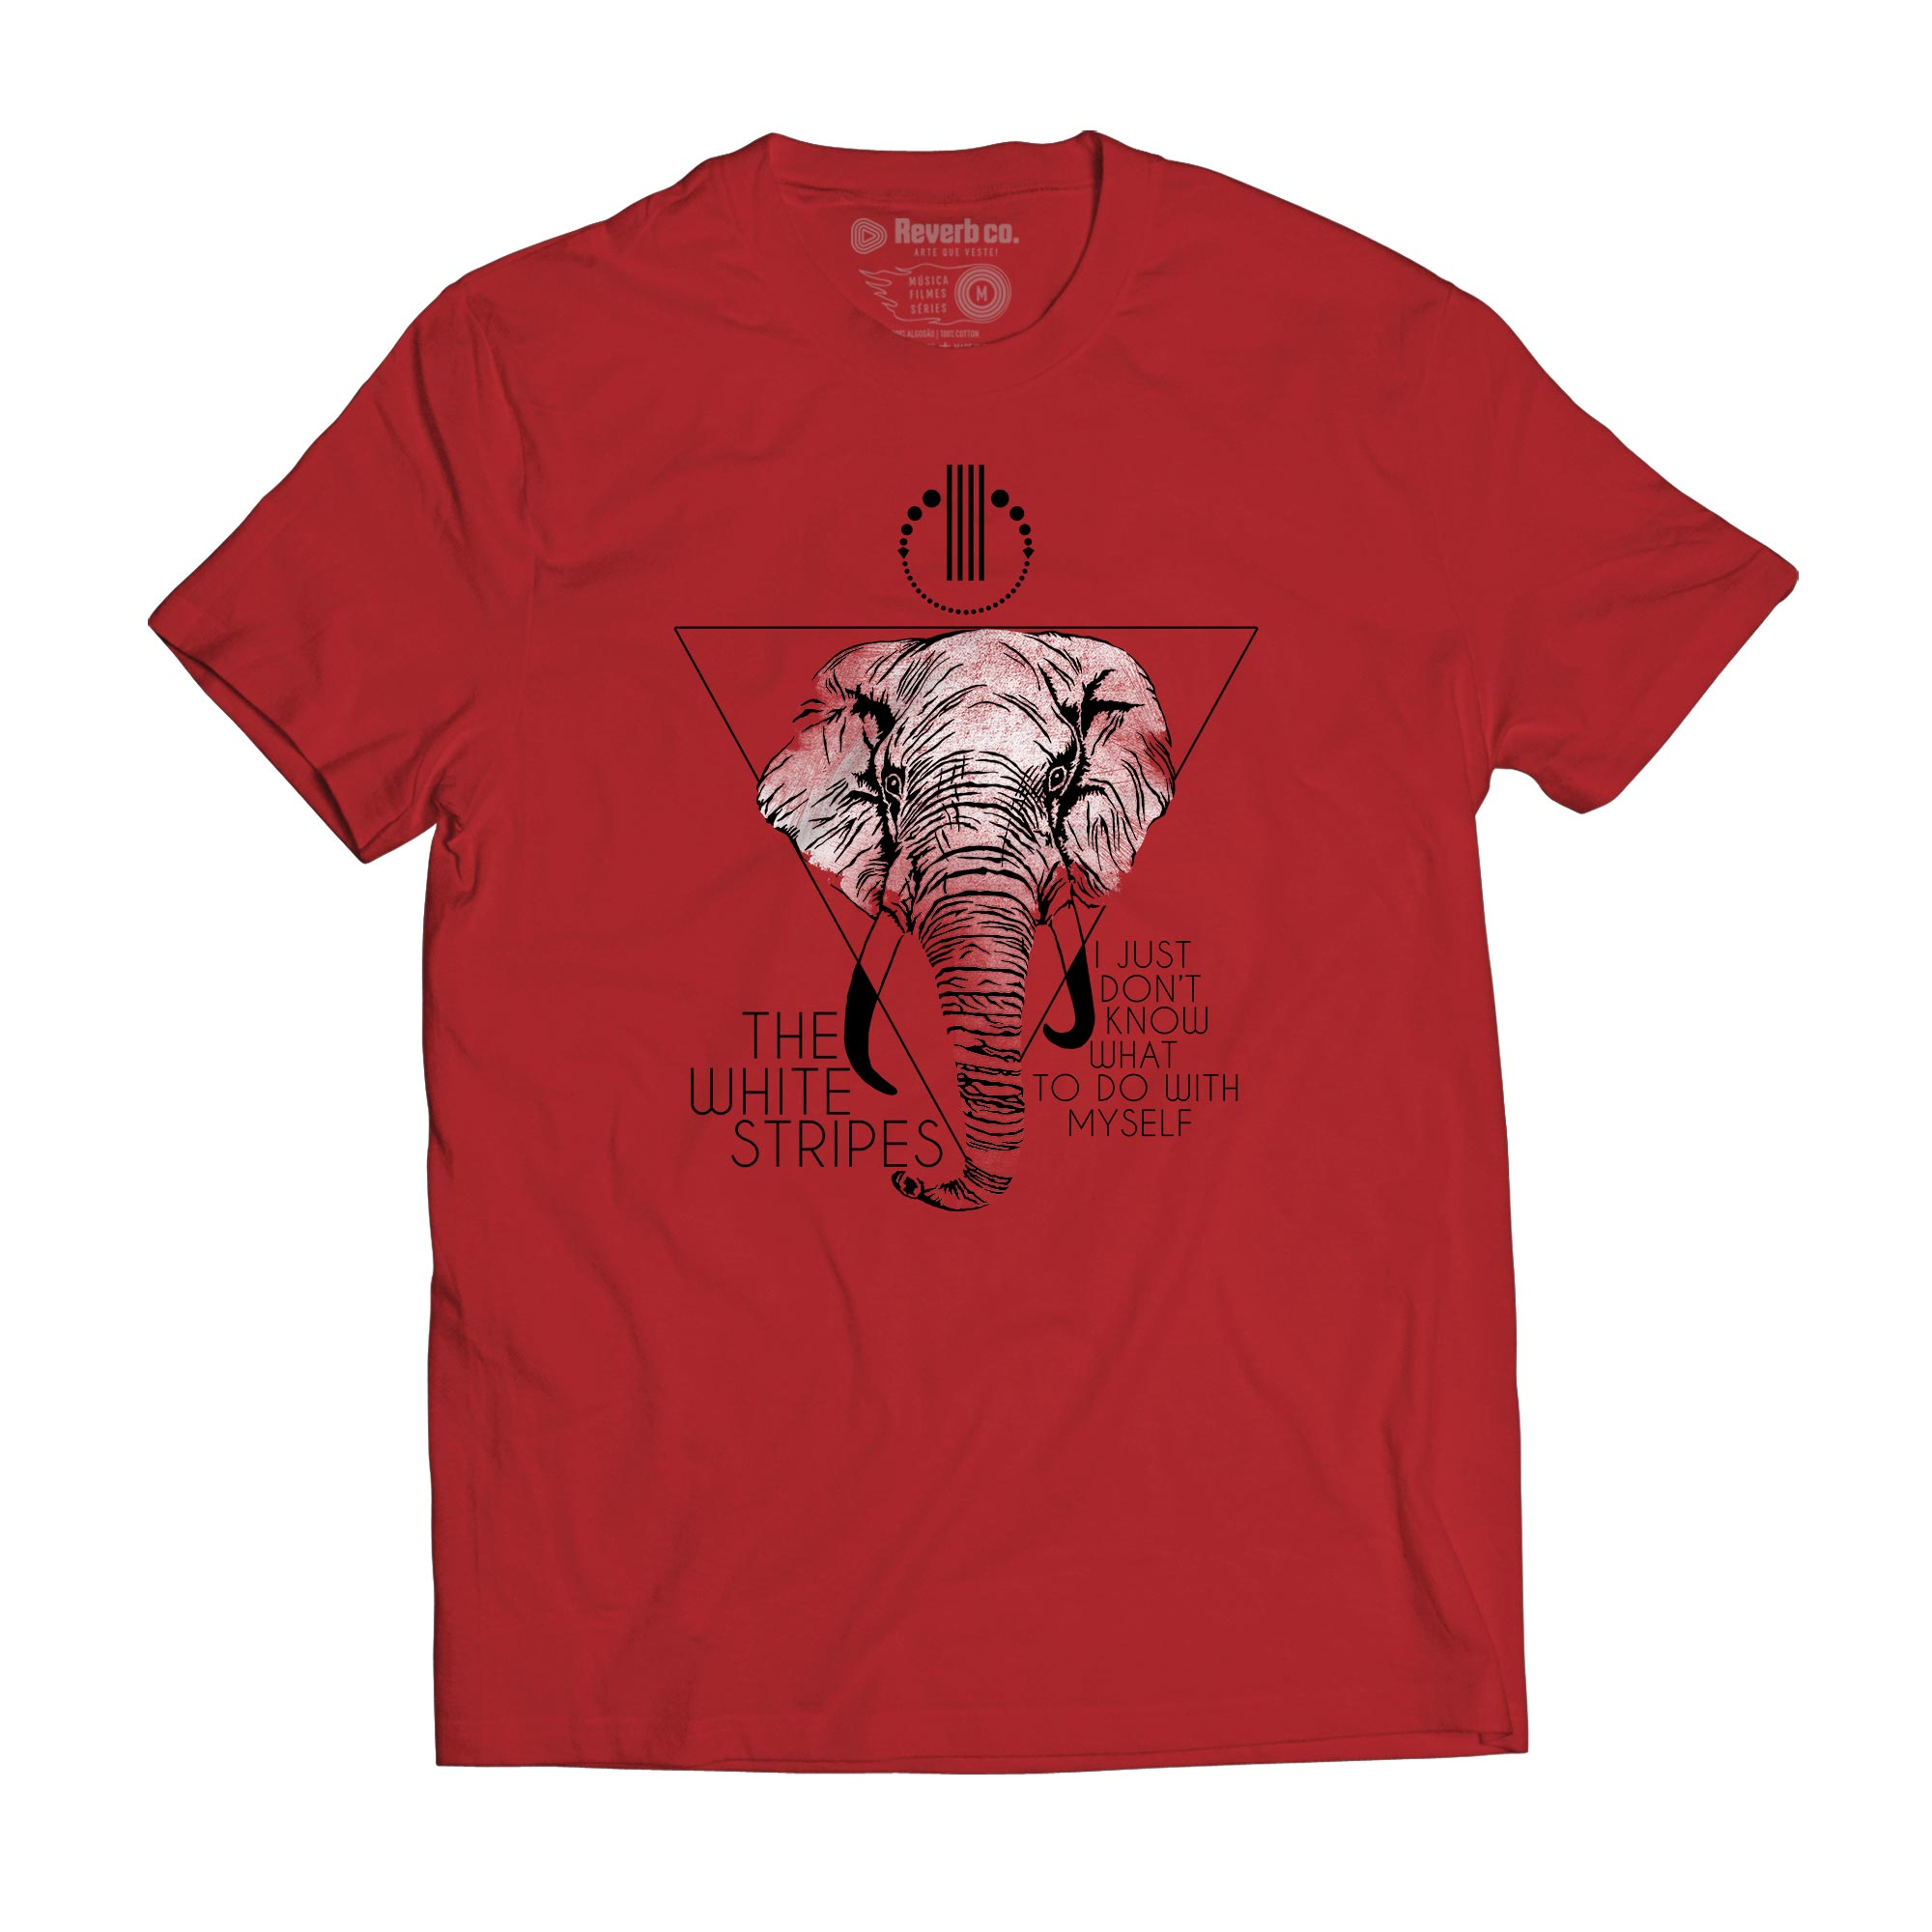 Camiseta I Just Dont - The White Stripes - Masculino